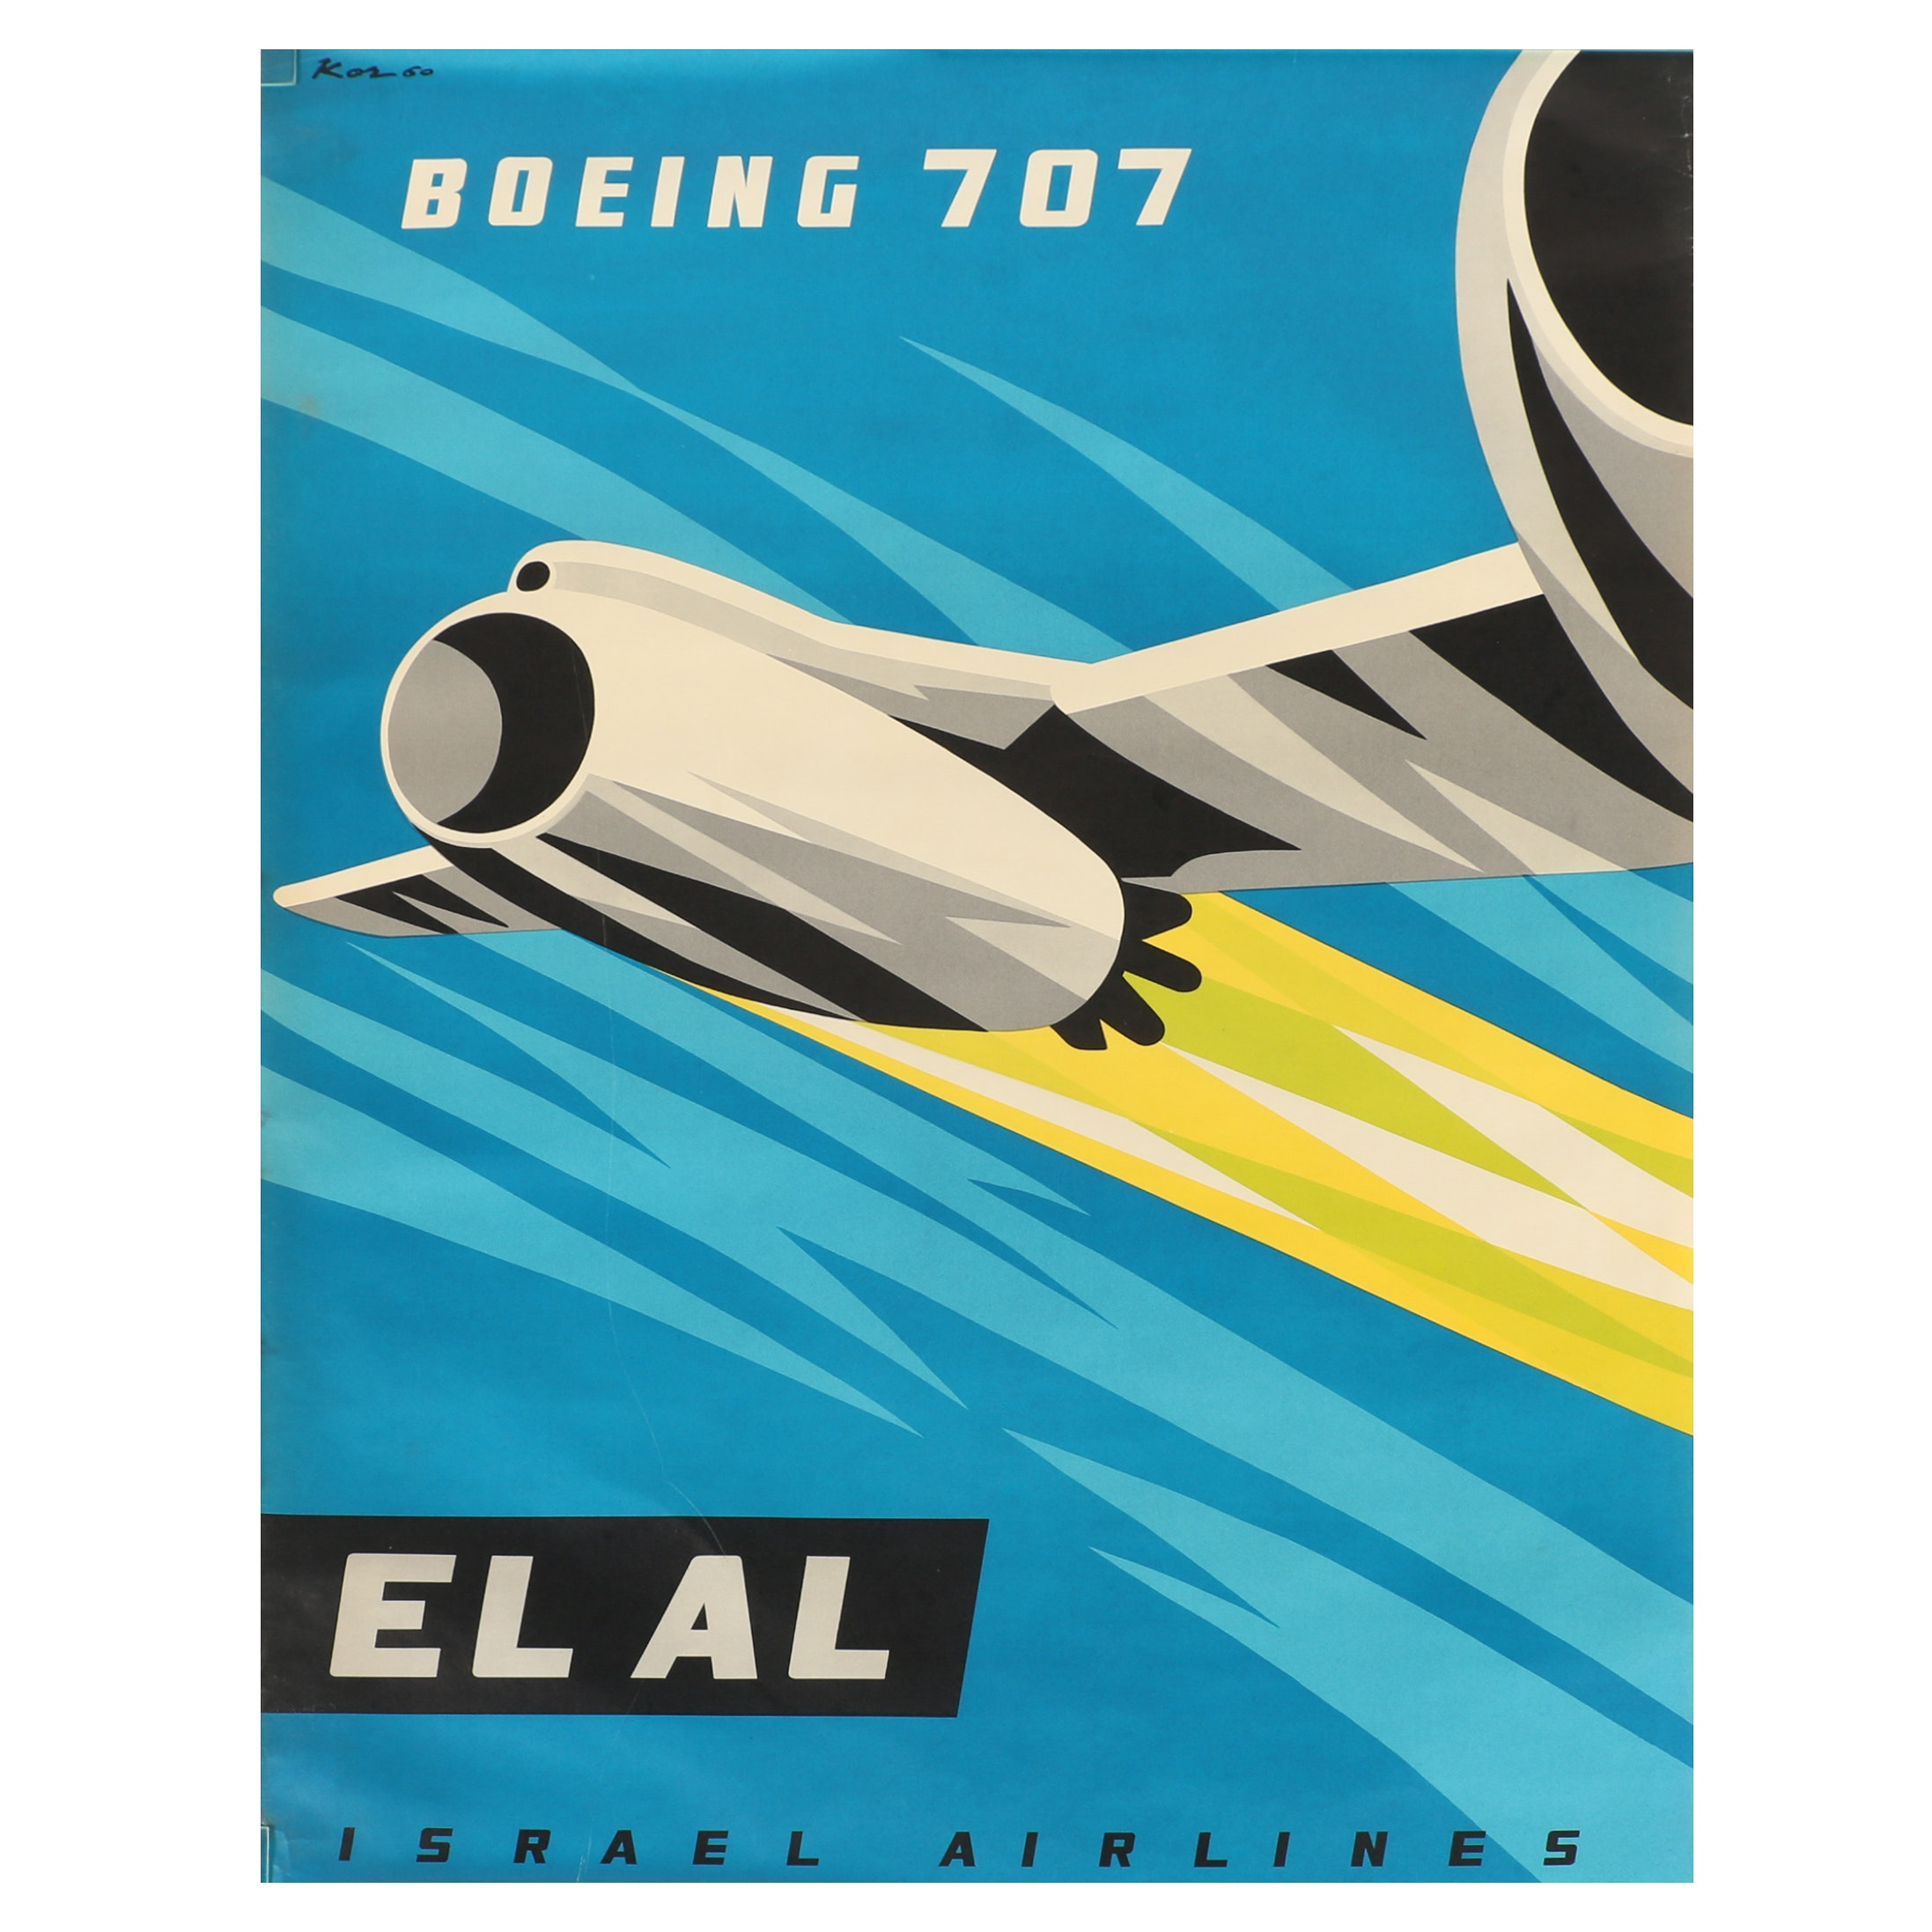 Israel Airlines Offset Lithograph Poster After Paul Kor